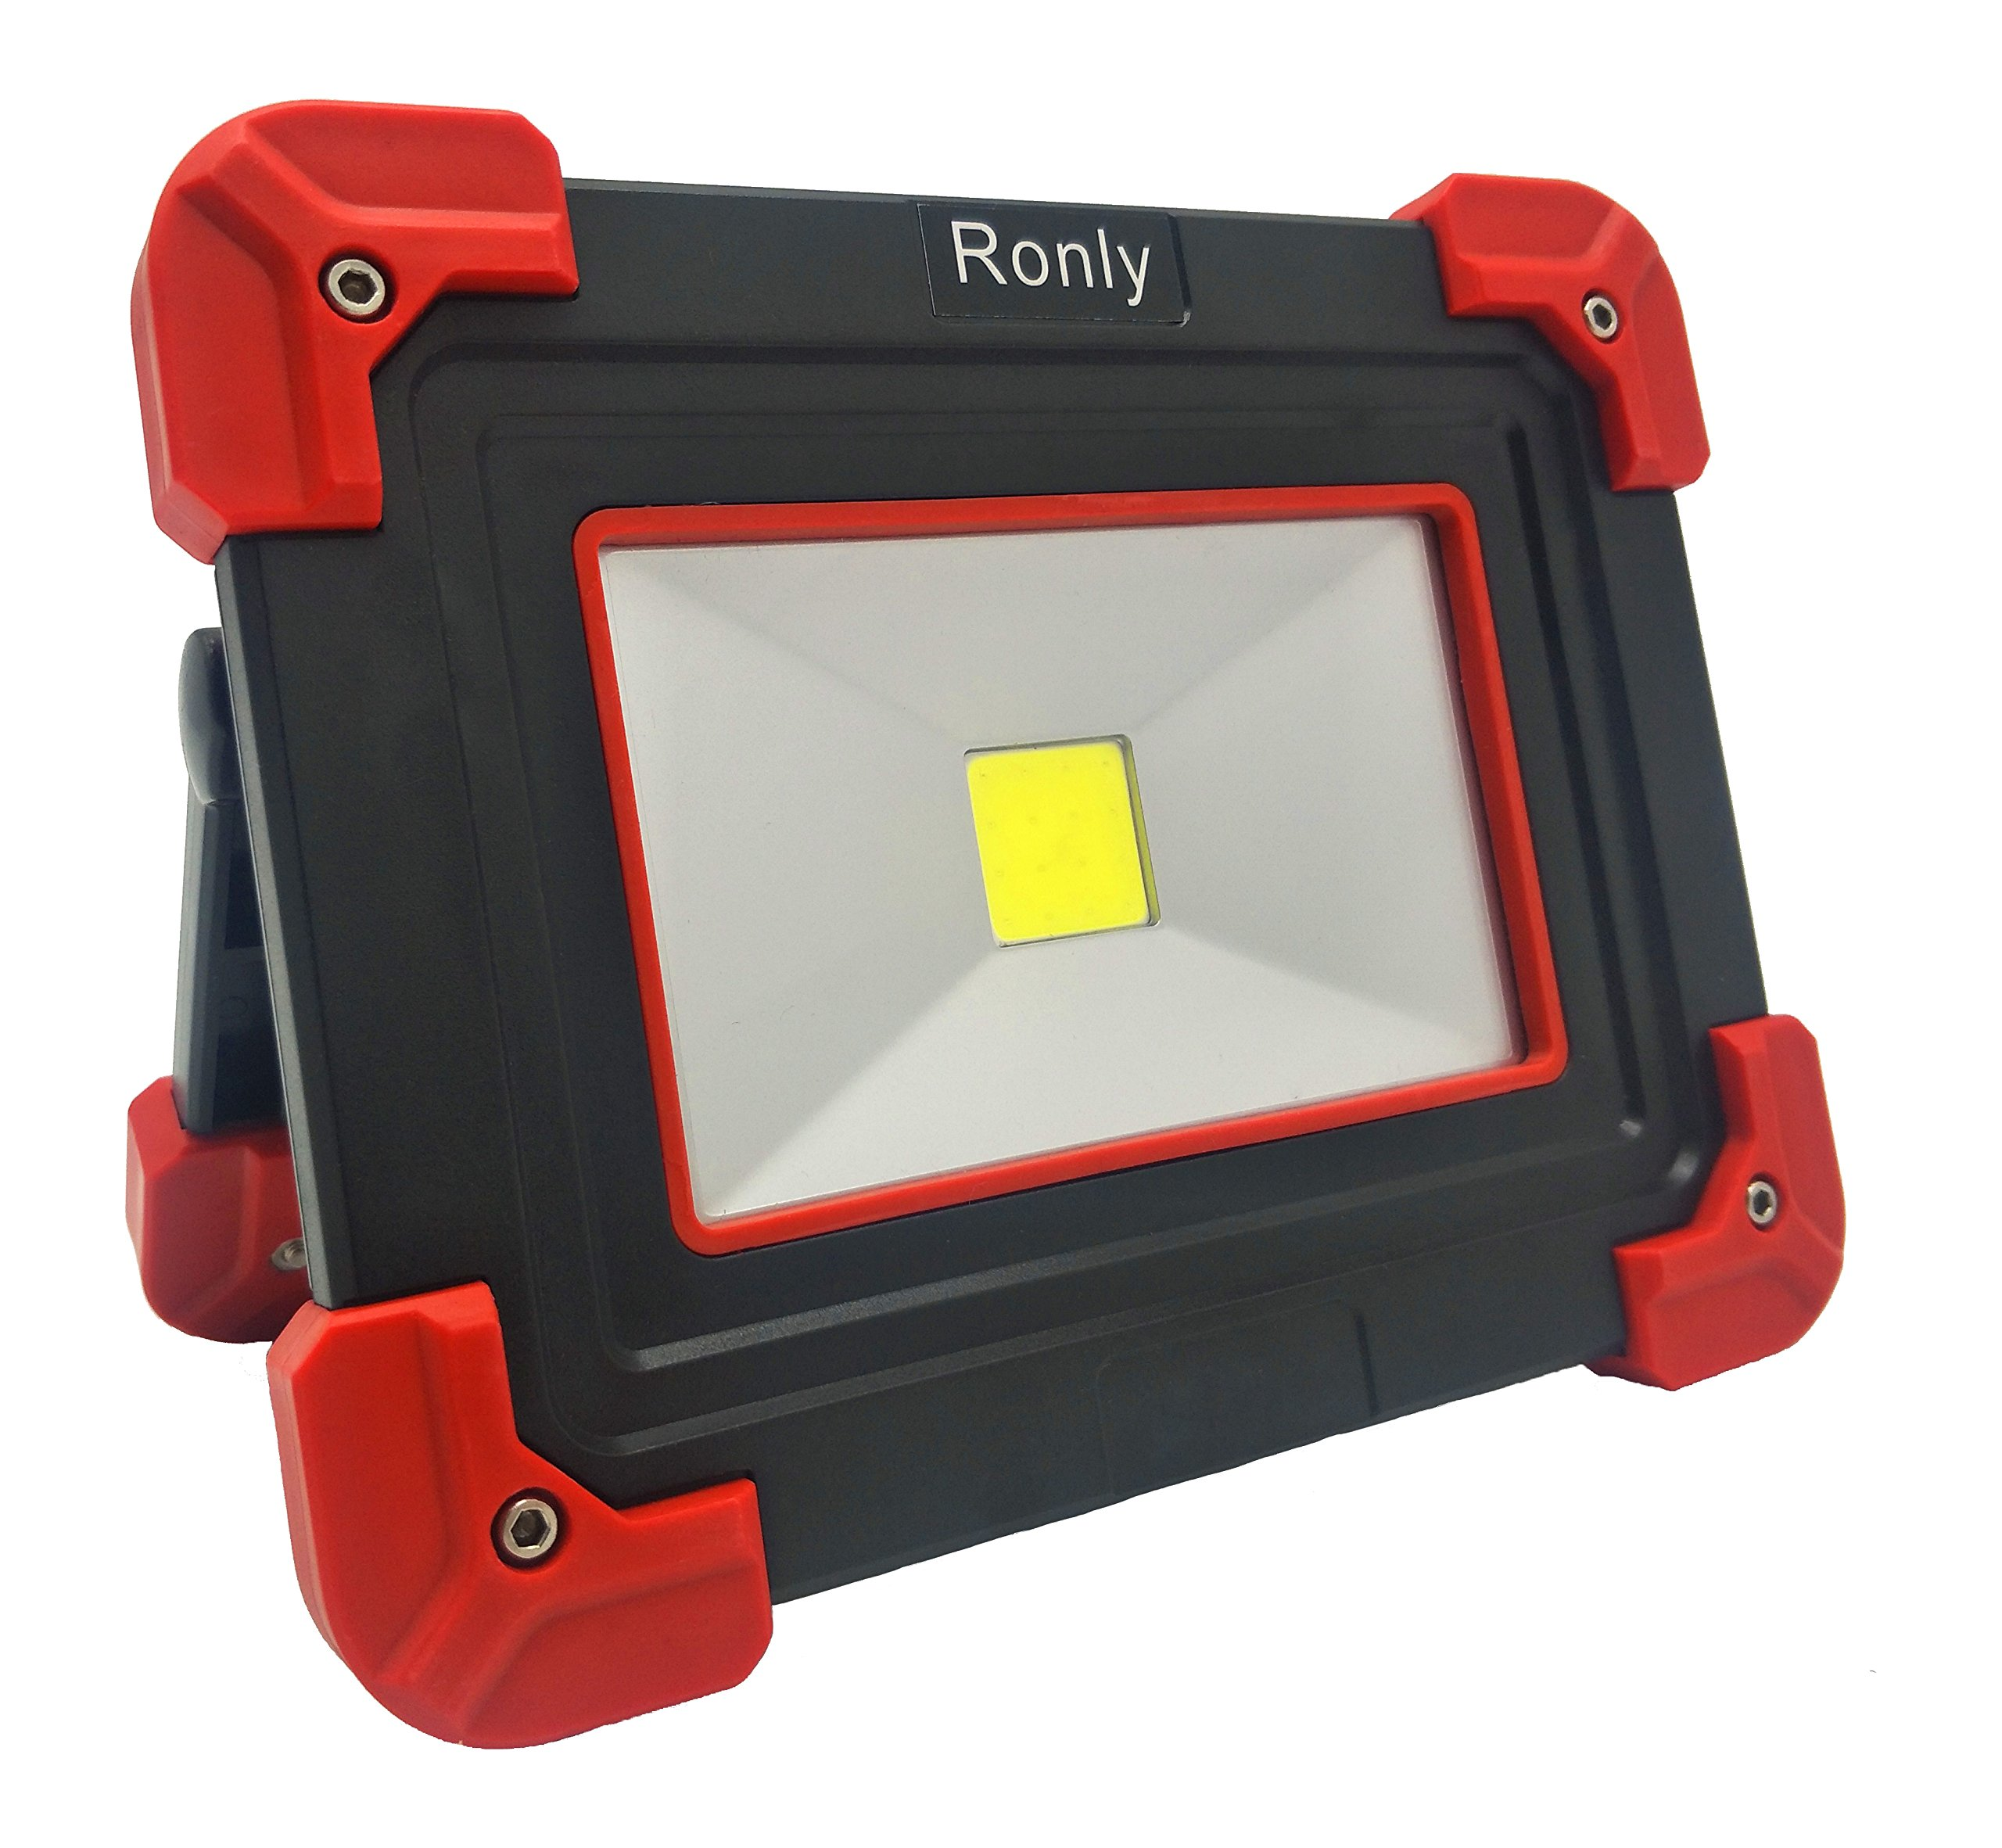 Ronly LED Portable Work Light - Outdoor Waterproof Wireless Rechargeable 5W Flood Light, 210lm 2200mAh Double USB- Port Spotlight for Camping,DIY Task and Emergency Case …